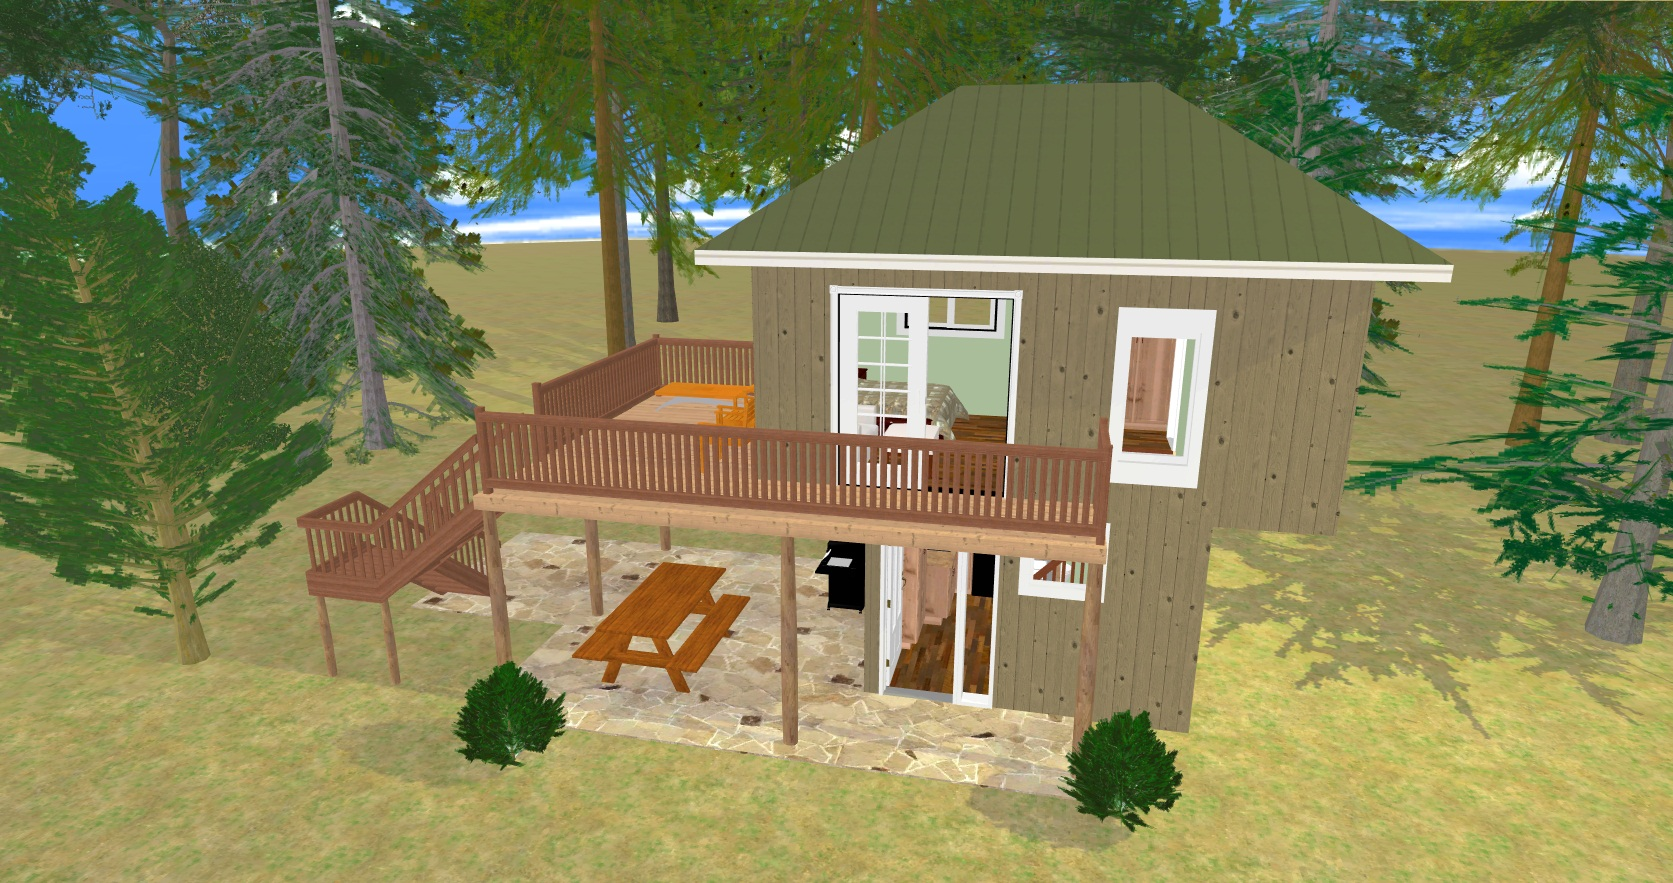 031230143c6f273b Easy Simple Tree House Plans Tree House Floor Plans 300 Sq Ft on Small 2 Story Craftsman House Plans